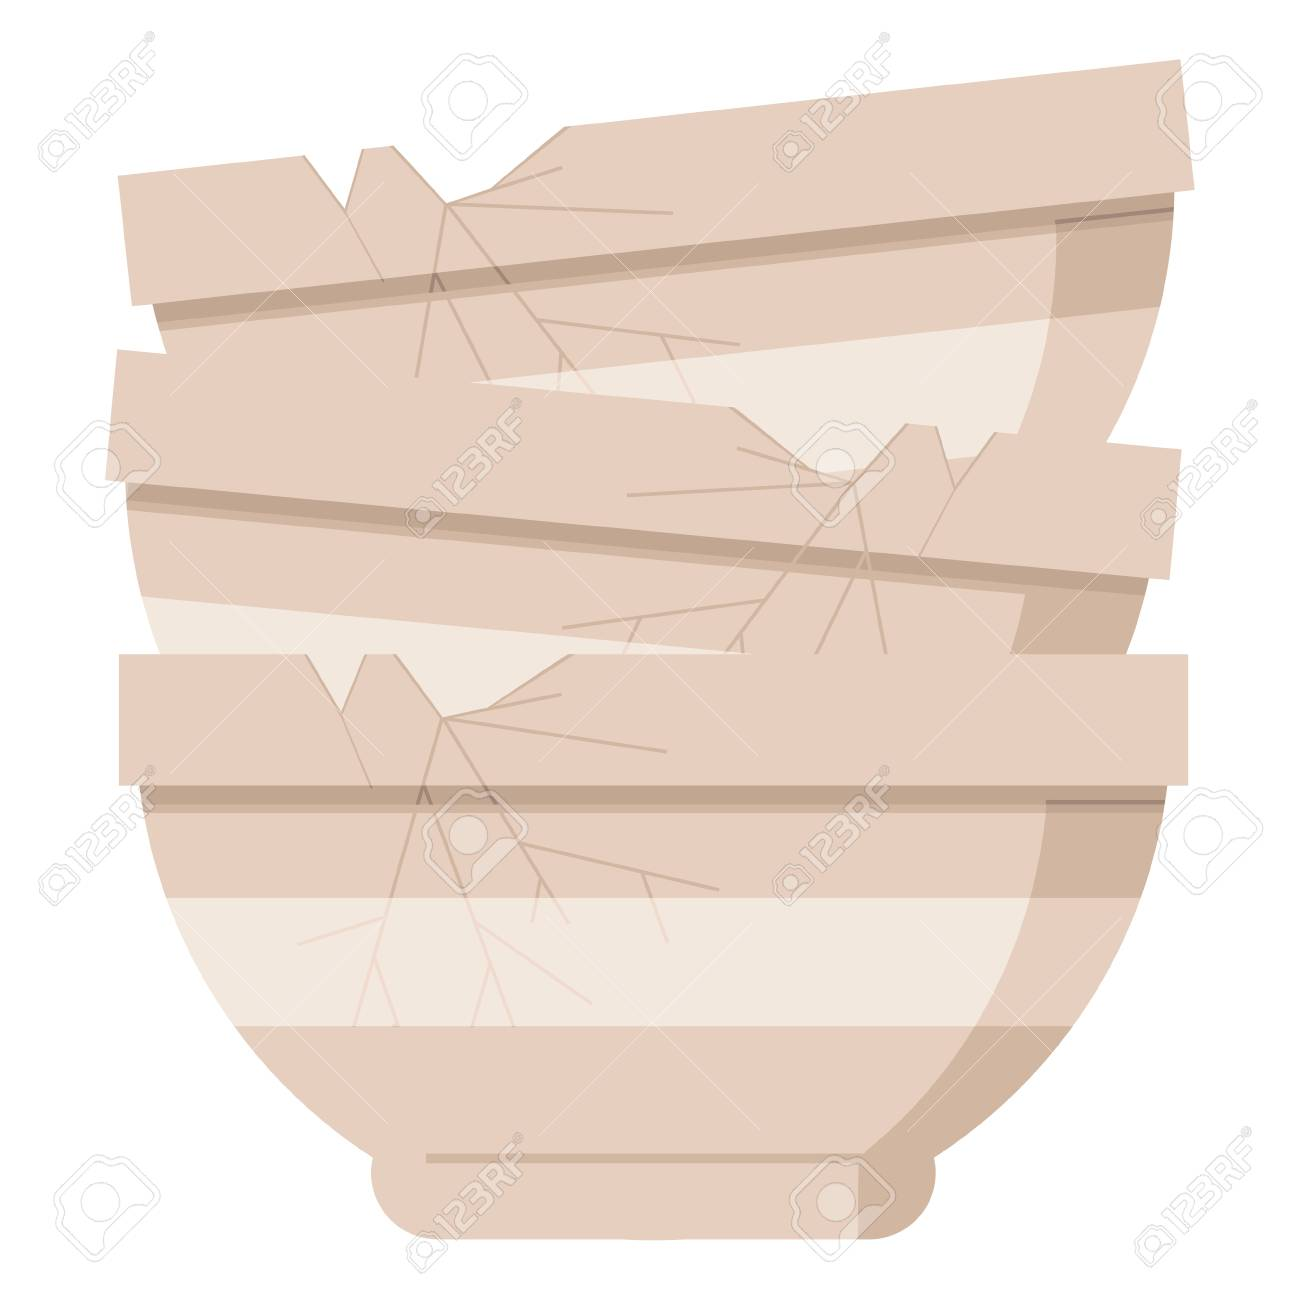 stack of cracked old bowls graphic vector illustration icon - 110422838